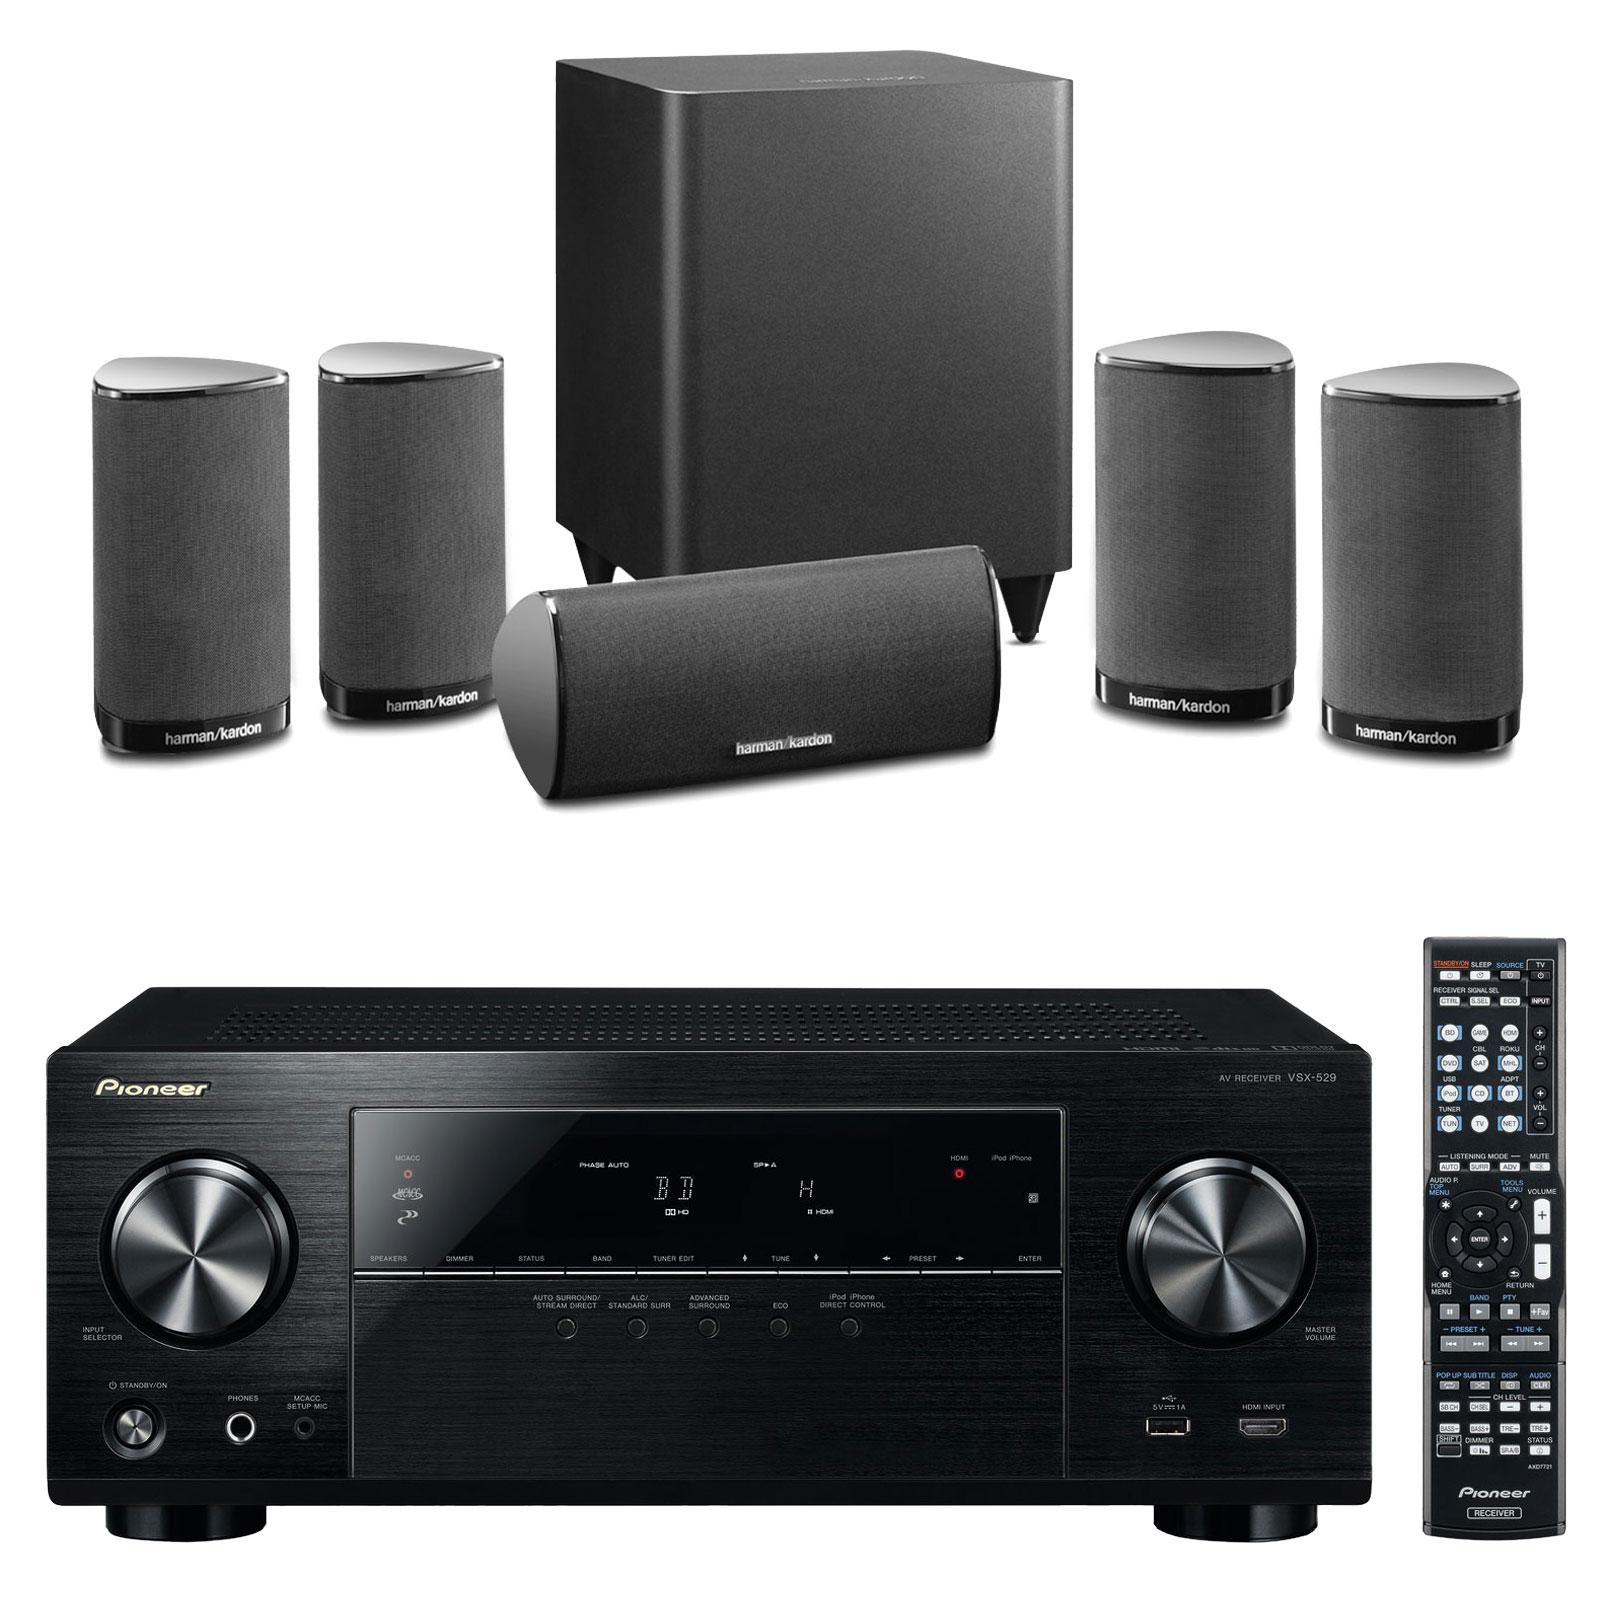 pioneer vsx 529 k harman kardon hkts 5 ensemble home. Black Bedroom Furniture Sets. Home Design Ideas